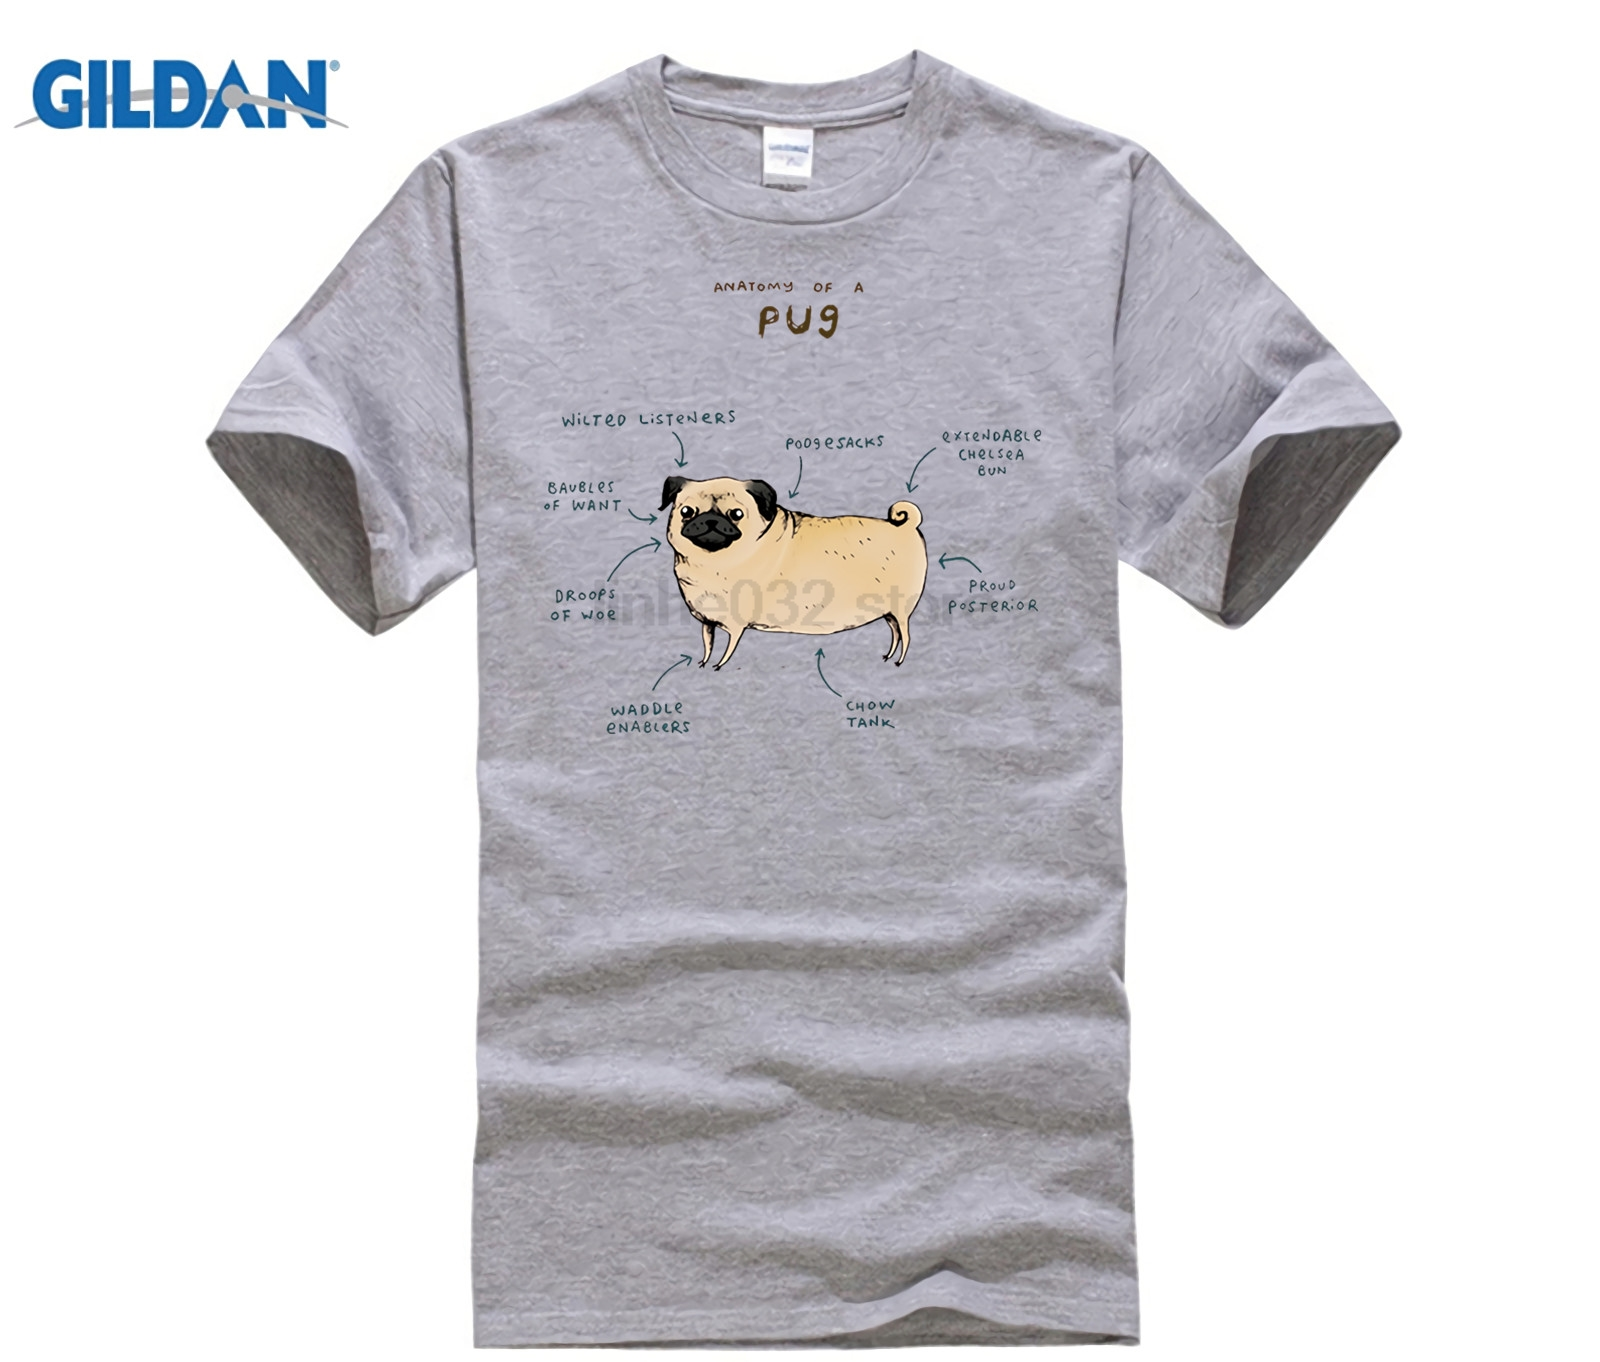 a8f5fa5a9 GILDAN Anatomy of Animals T Shirt Pug Dog Chicken Cow Fox Goat Rabbit Maine  Coon Hedgehog Axolot Elephant Anatomy T-Shirt